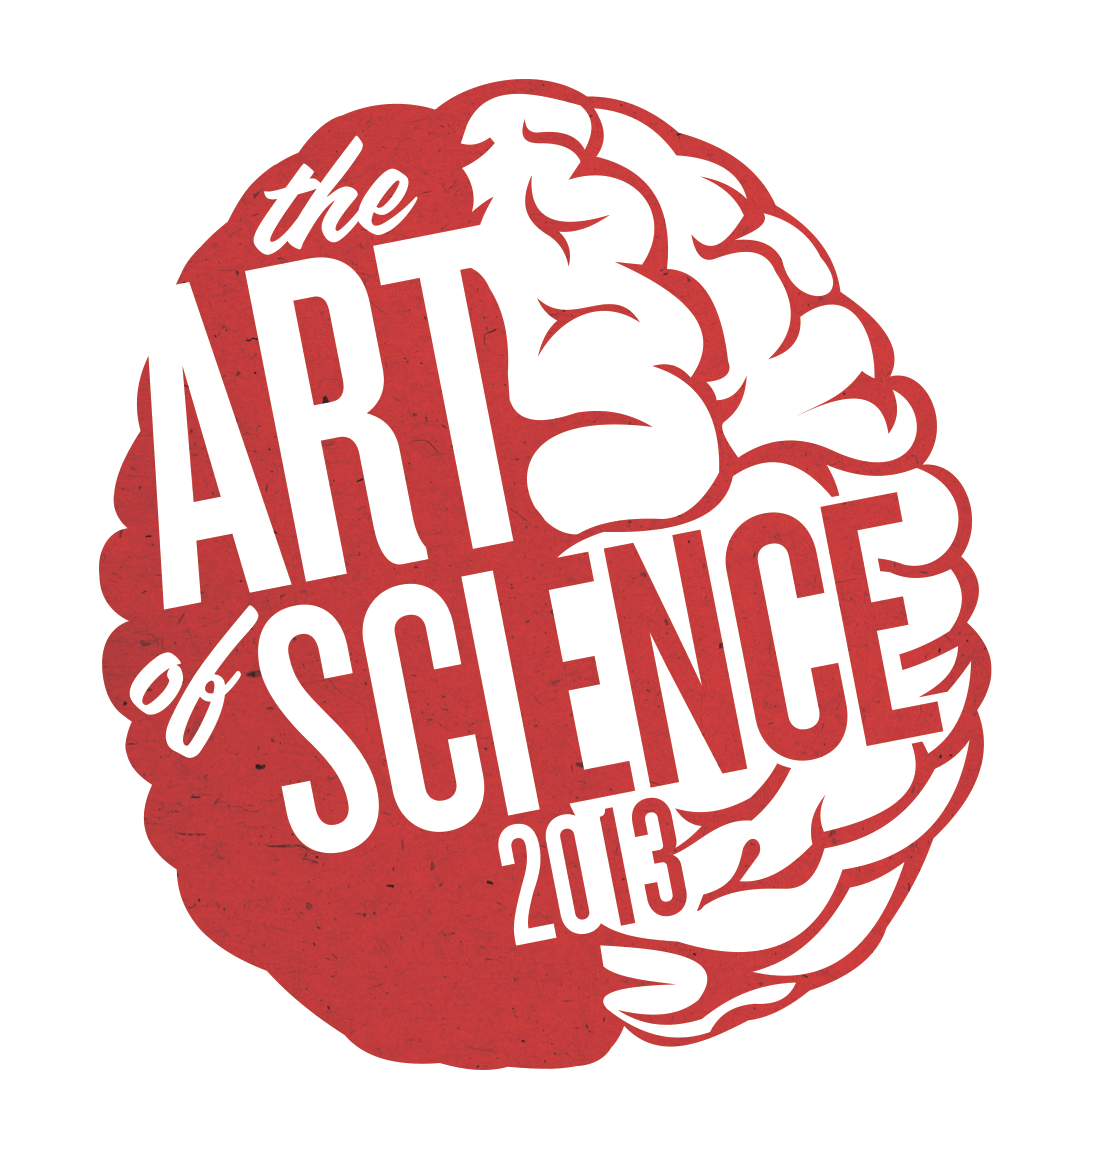 the logo for Art of Science 2013 is updated from 2012 with more sophisticated typography and a more playful shade of red—a change from the elegant but mature shade of maroon from 2012.